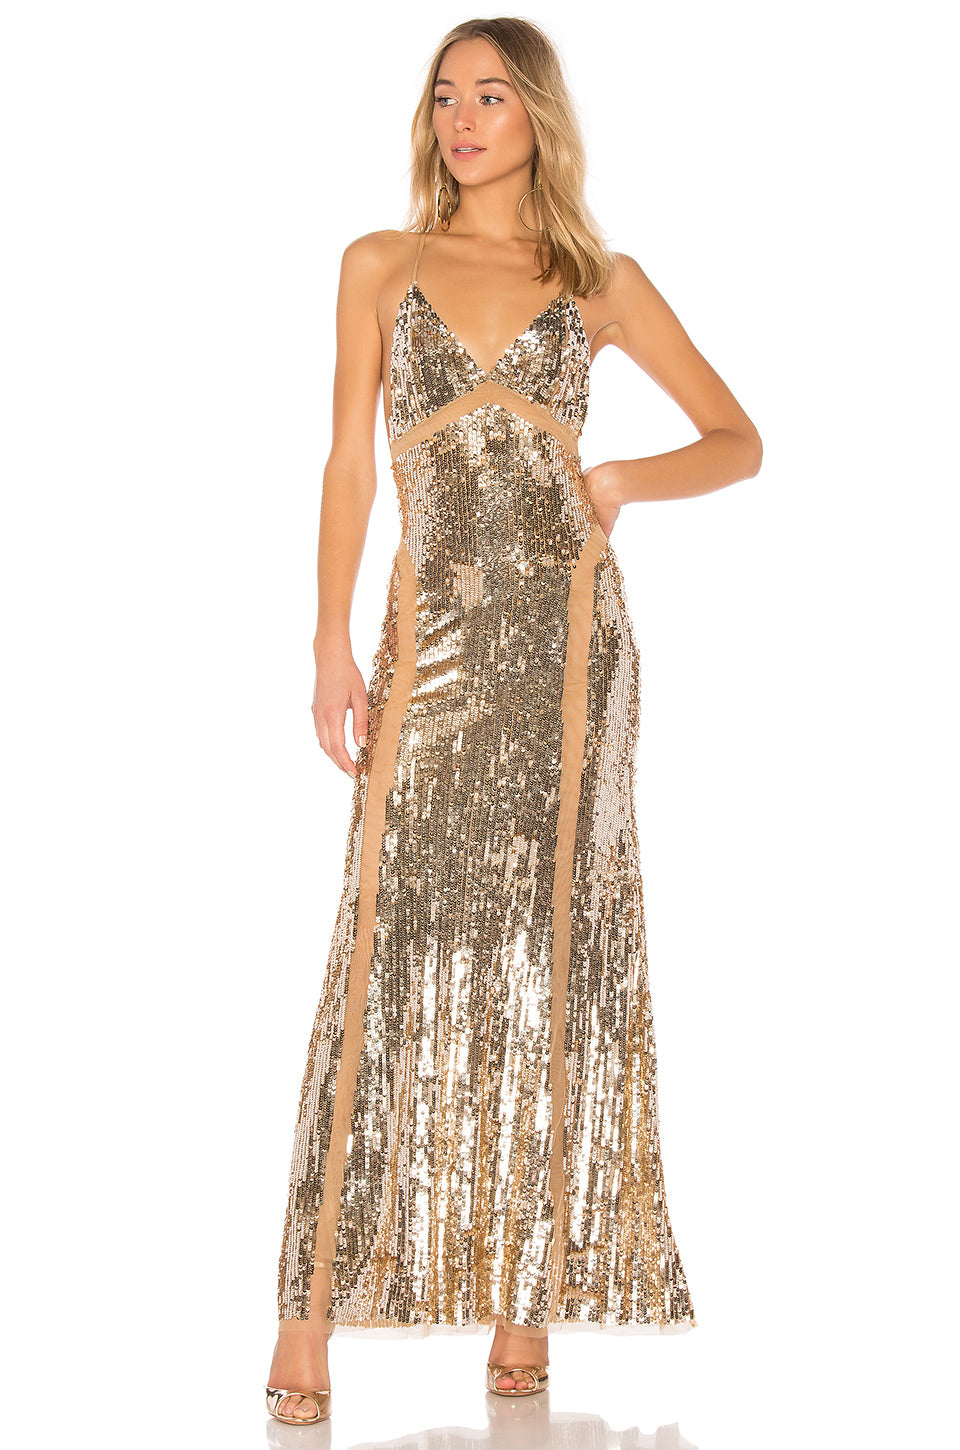 Loyal Gown in Gold | Lovers + Friends - Lovers + Friends